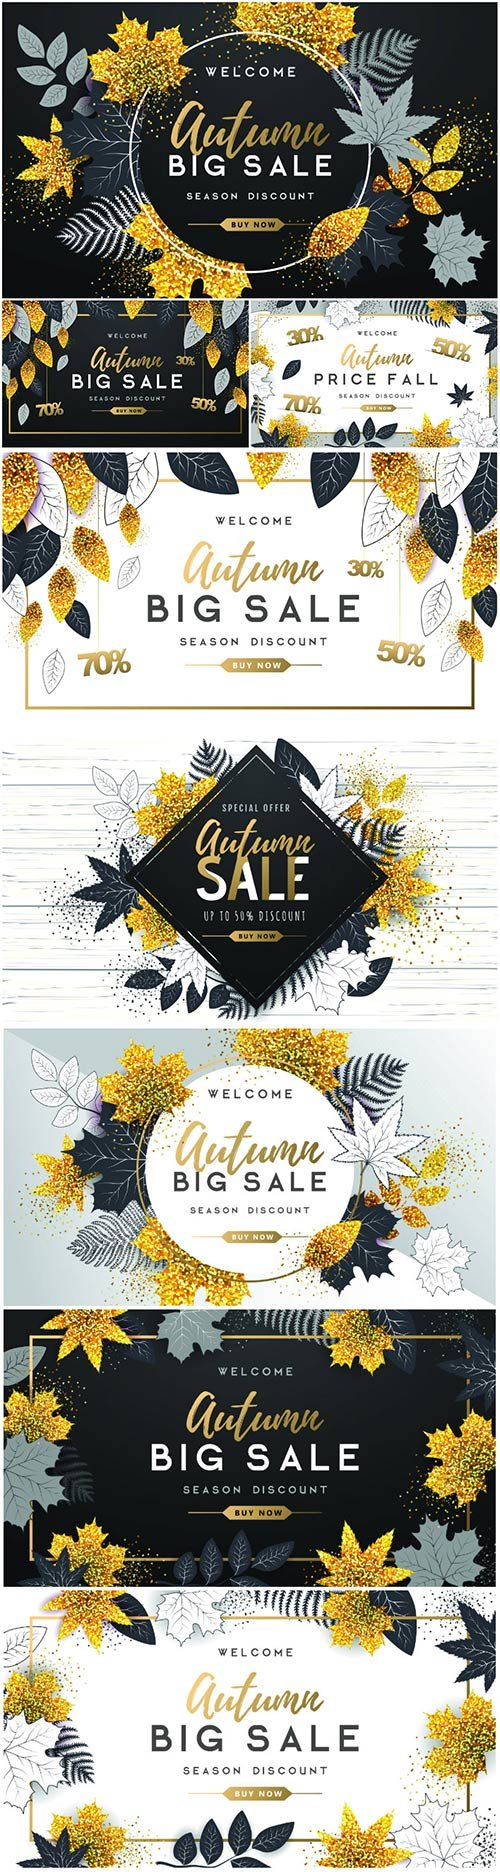 Autumn big sale poster with golden and black autumn leaves